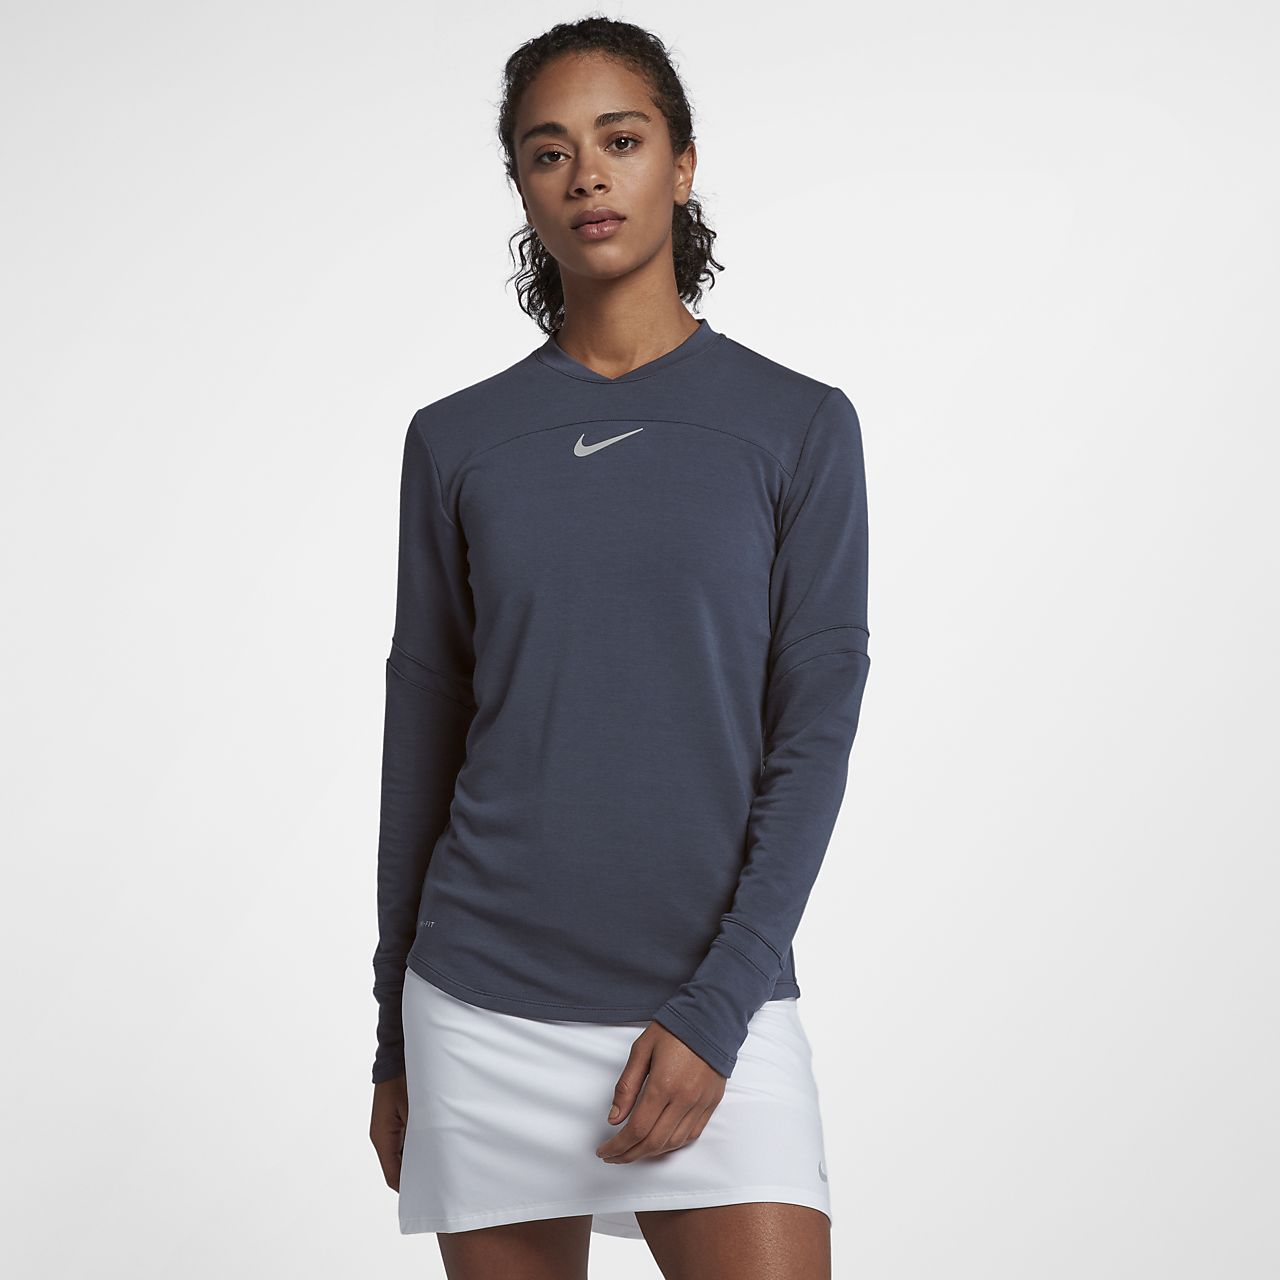 Nike Dry Women's Long-Sleeve Golf Top